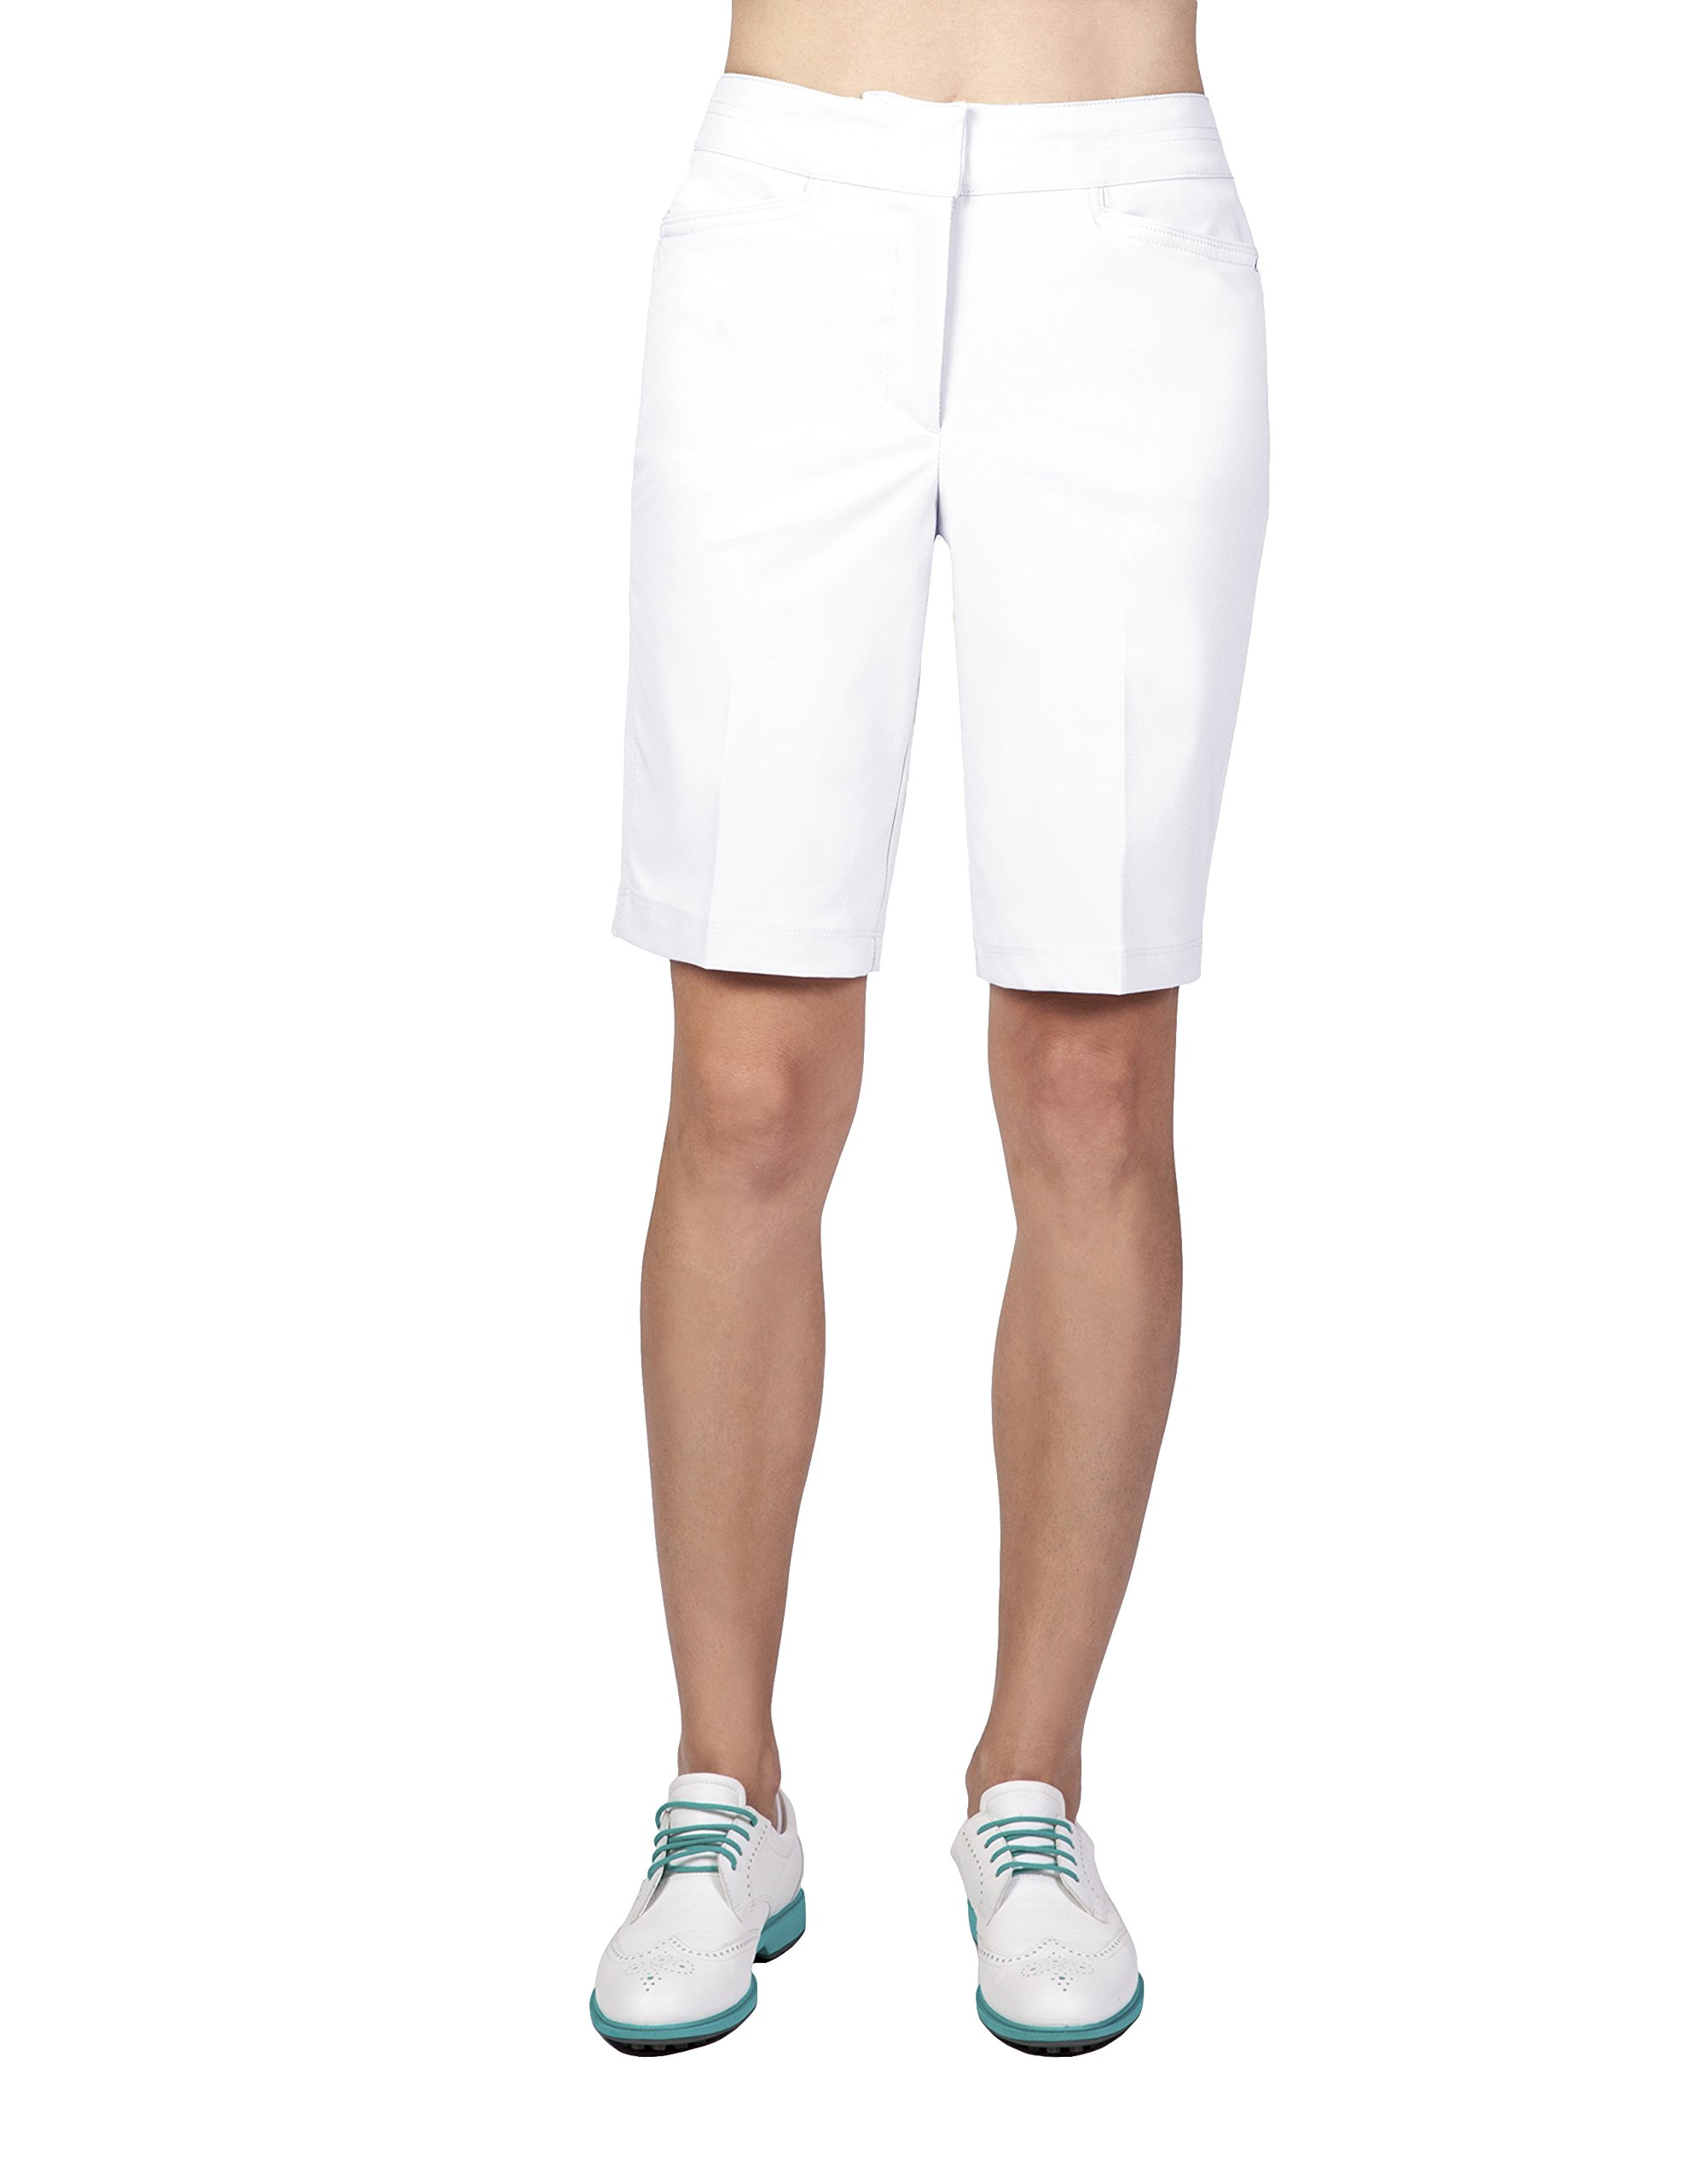 Tail Activewear Classic Short 4 White